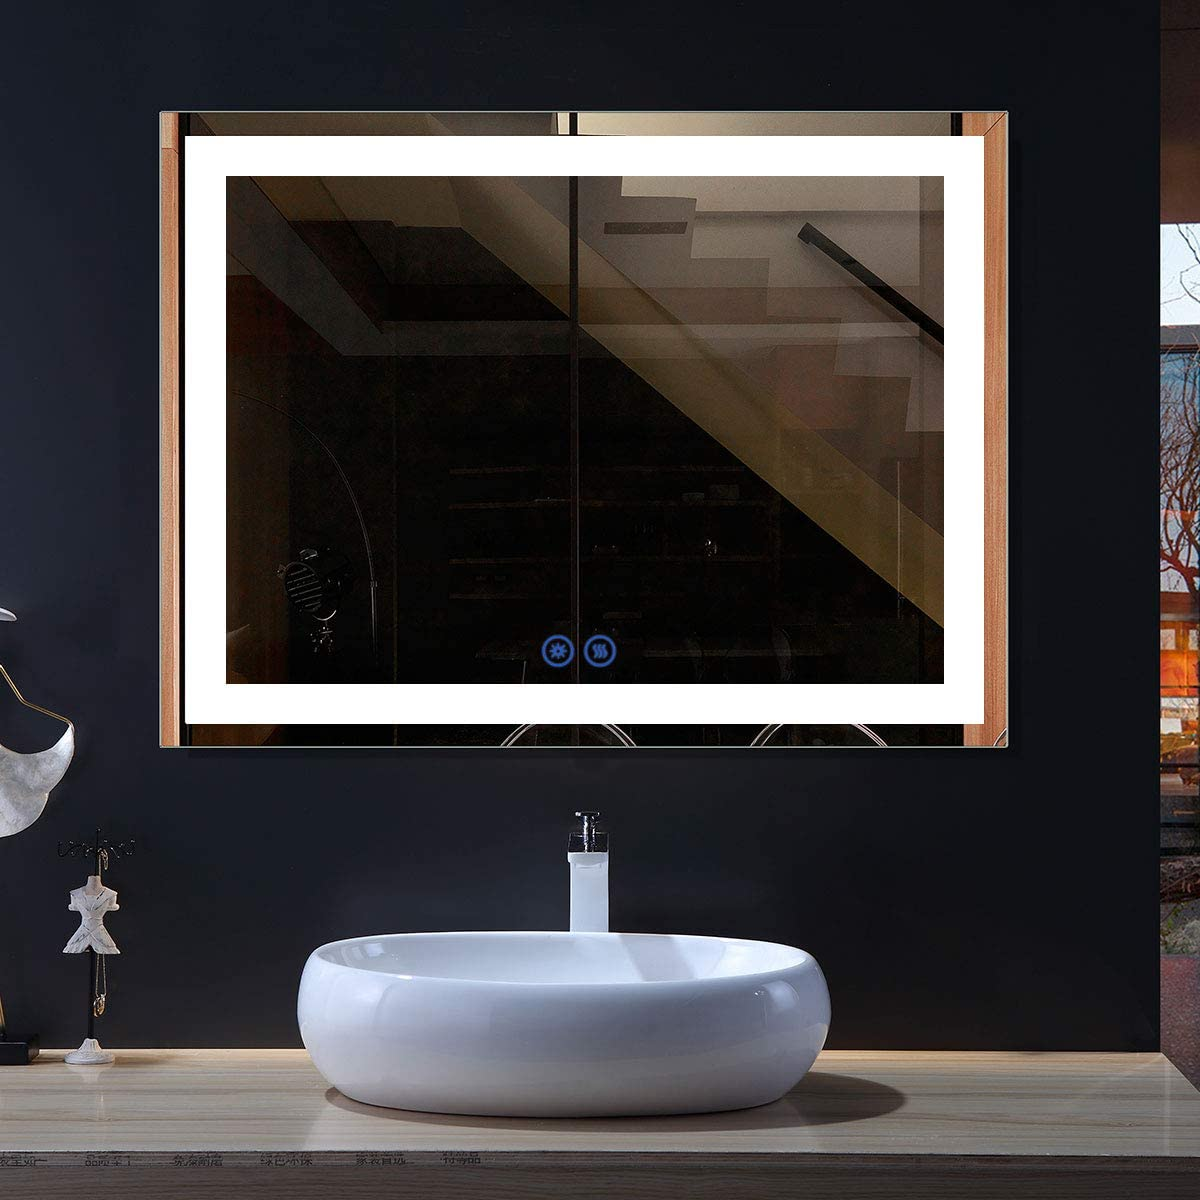 Dimmable 48x36 In Led Bathroom Mirror, Bathroom Mirror With Led Lights And Bluetooth